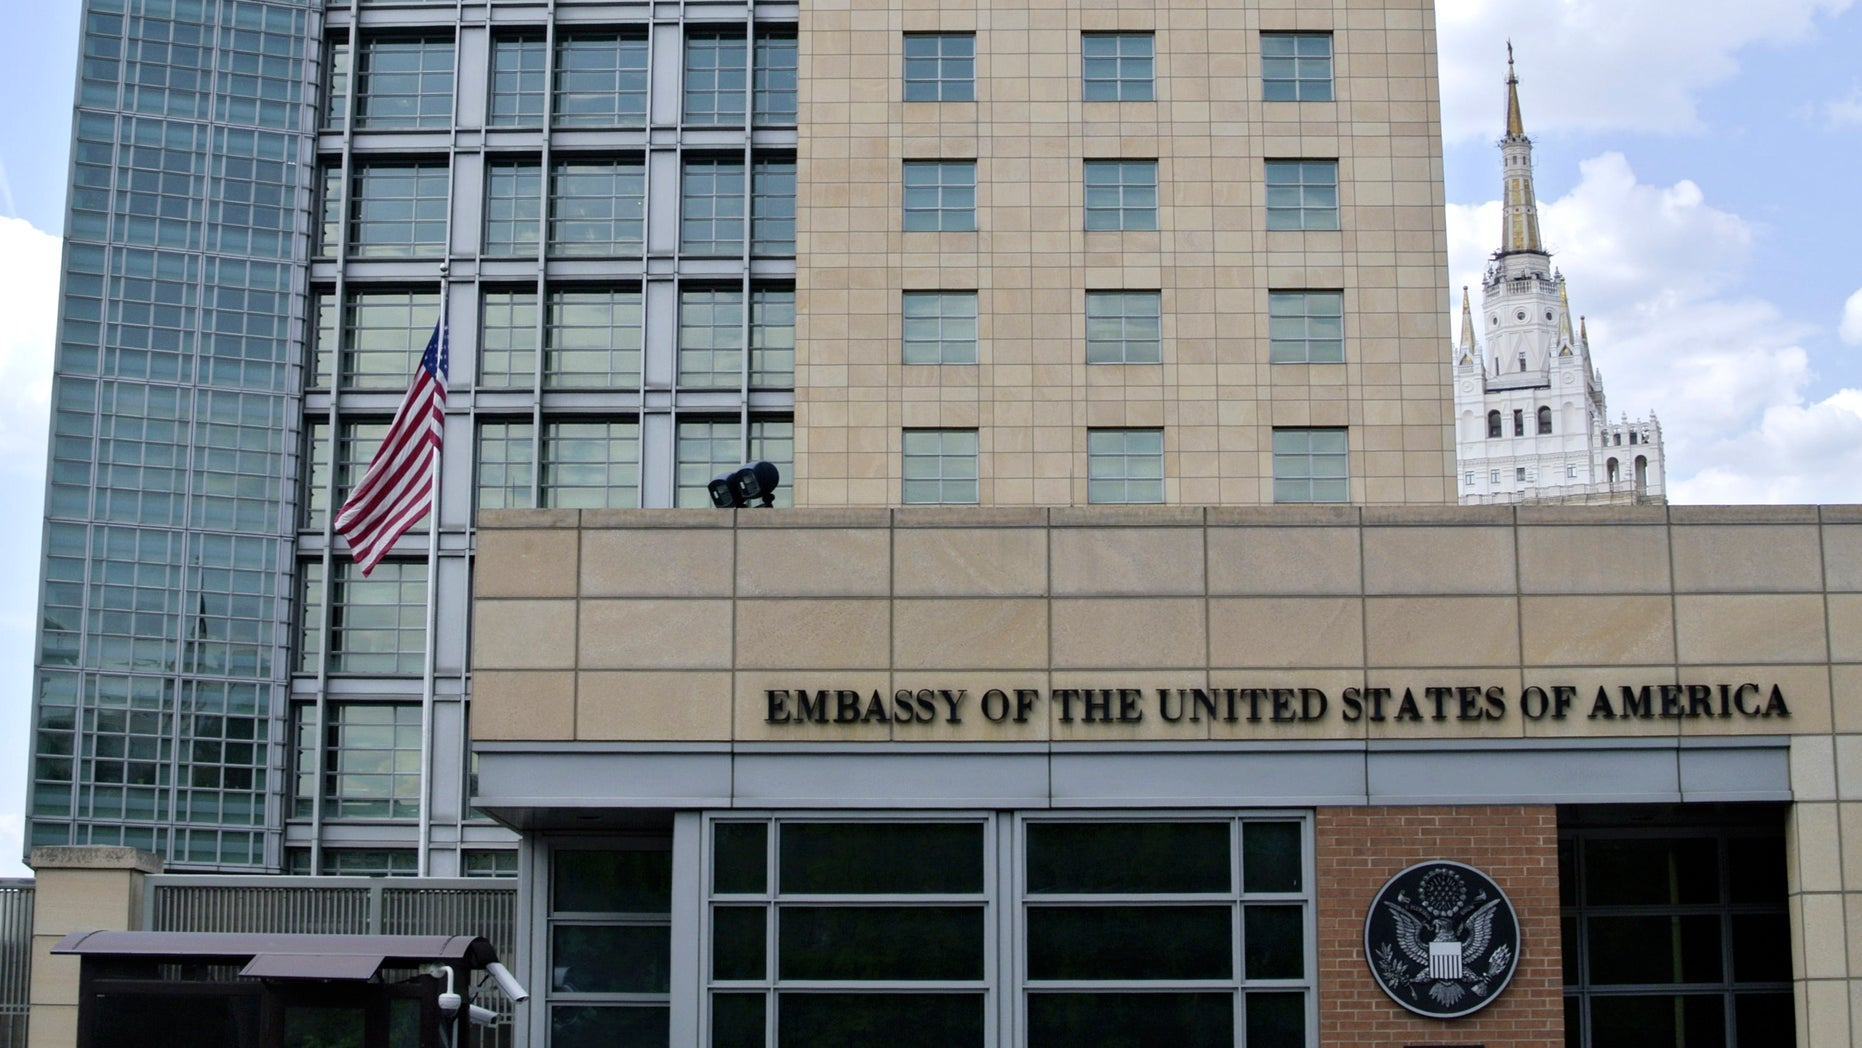 The U.S. Embassy in downtown Moscow.